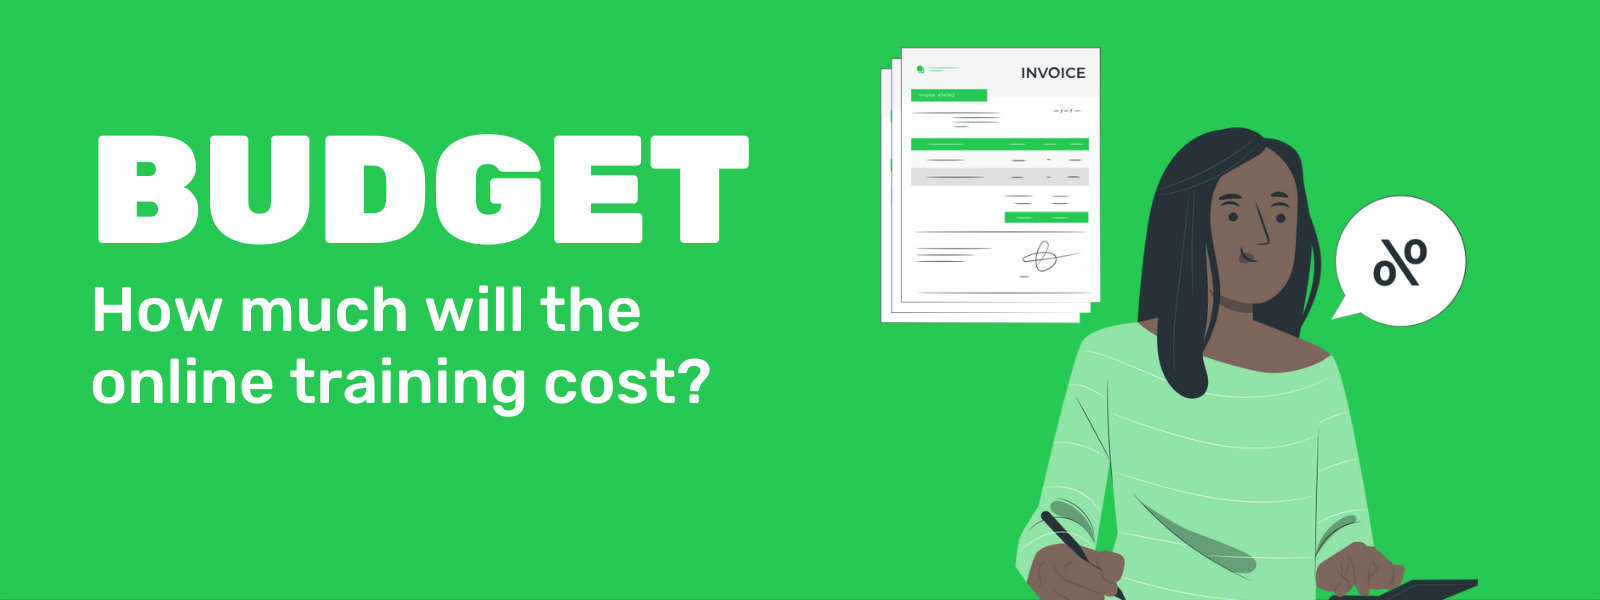 How much will the online training cost?